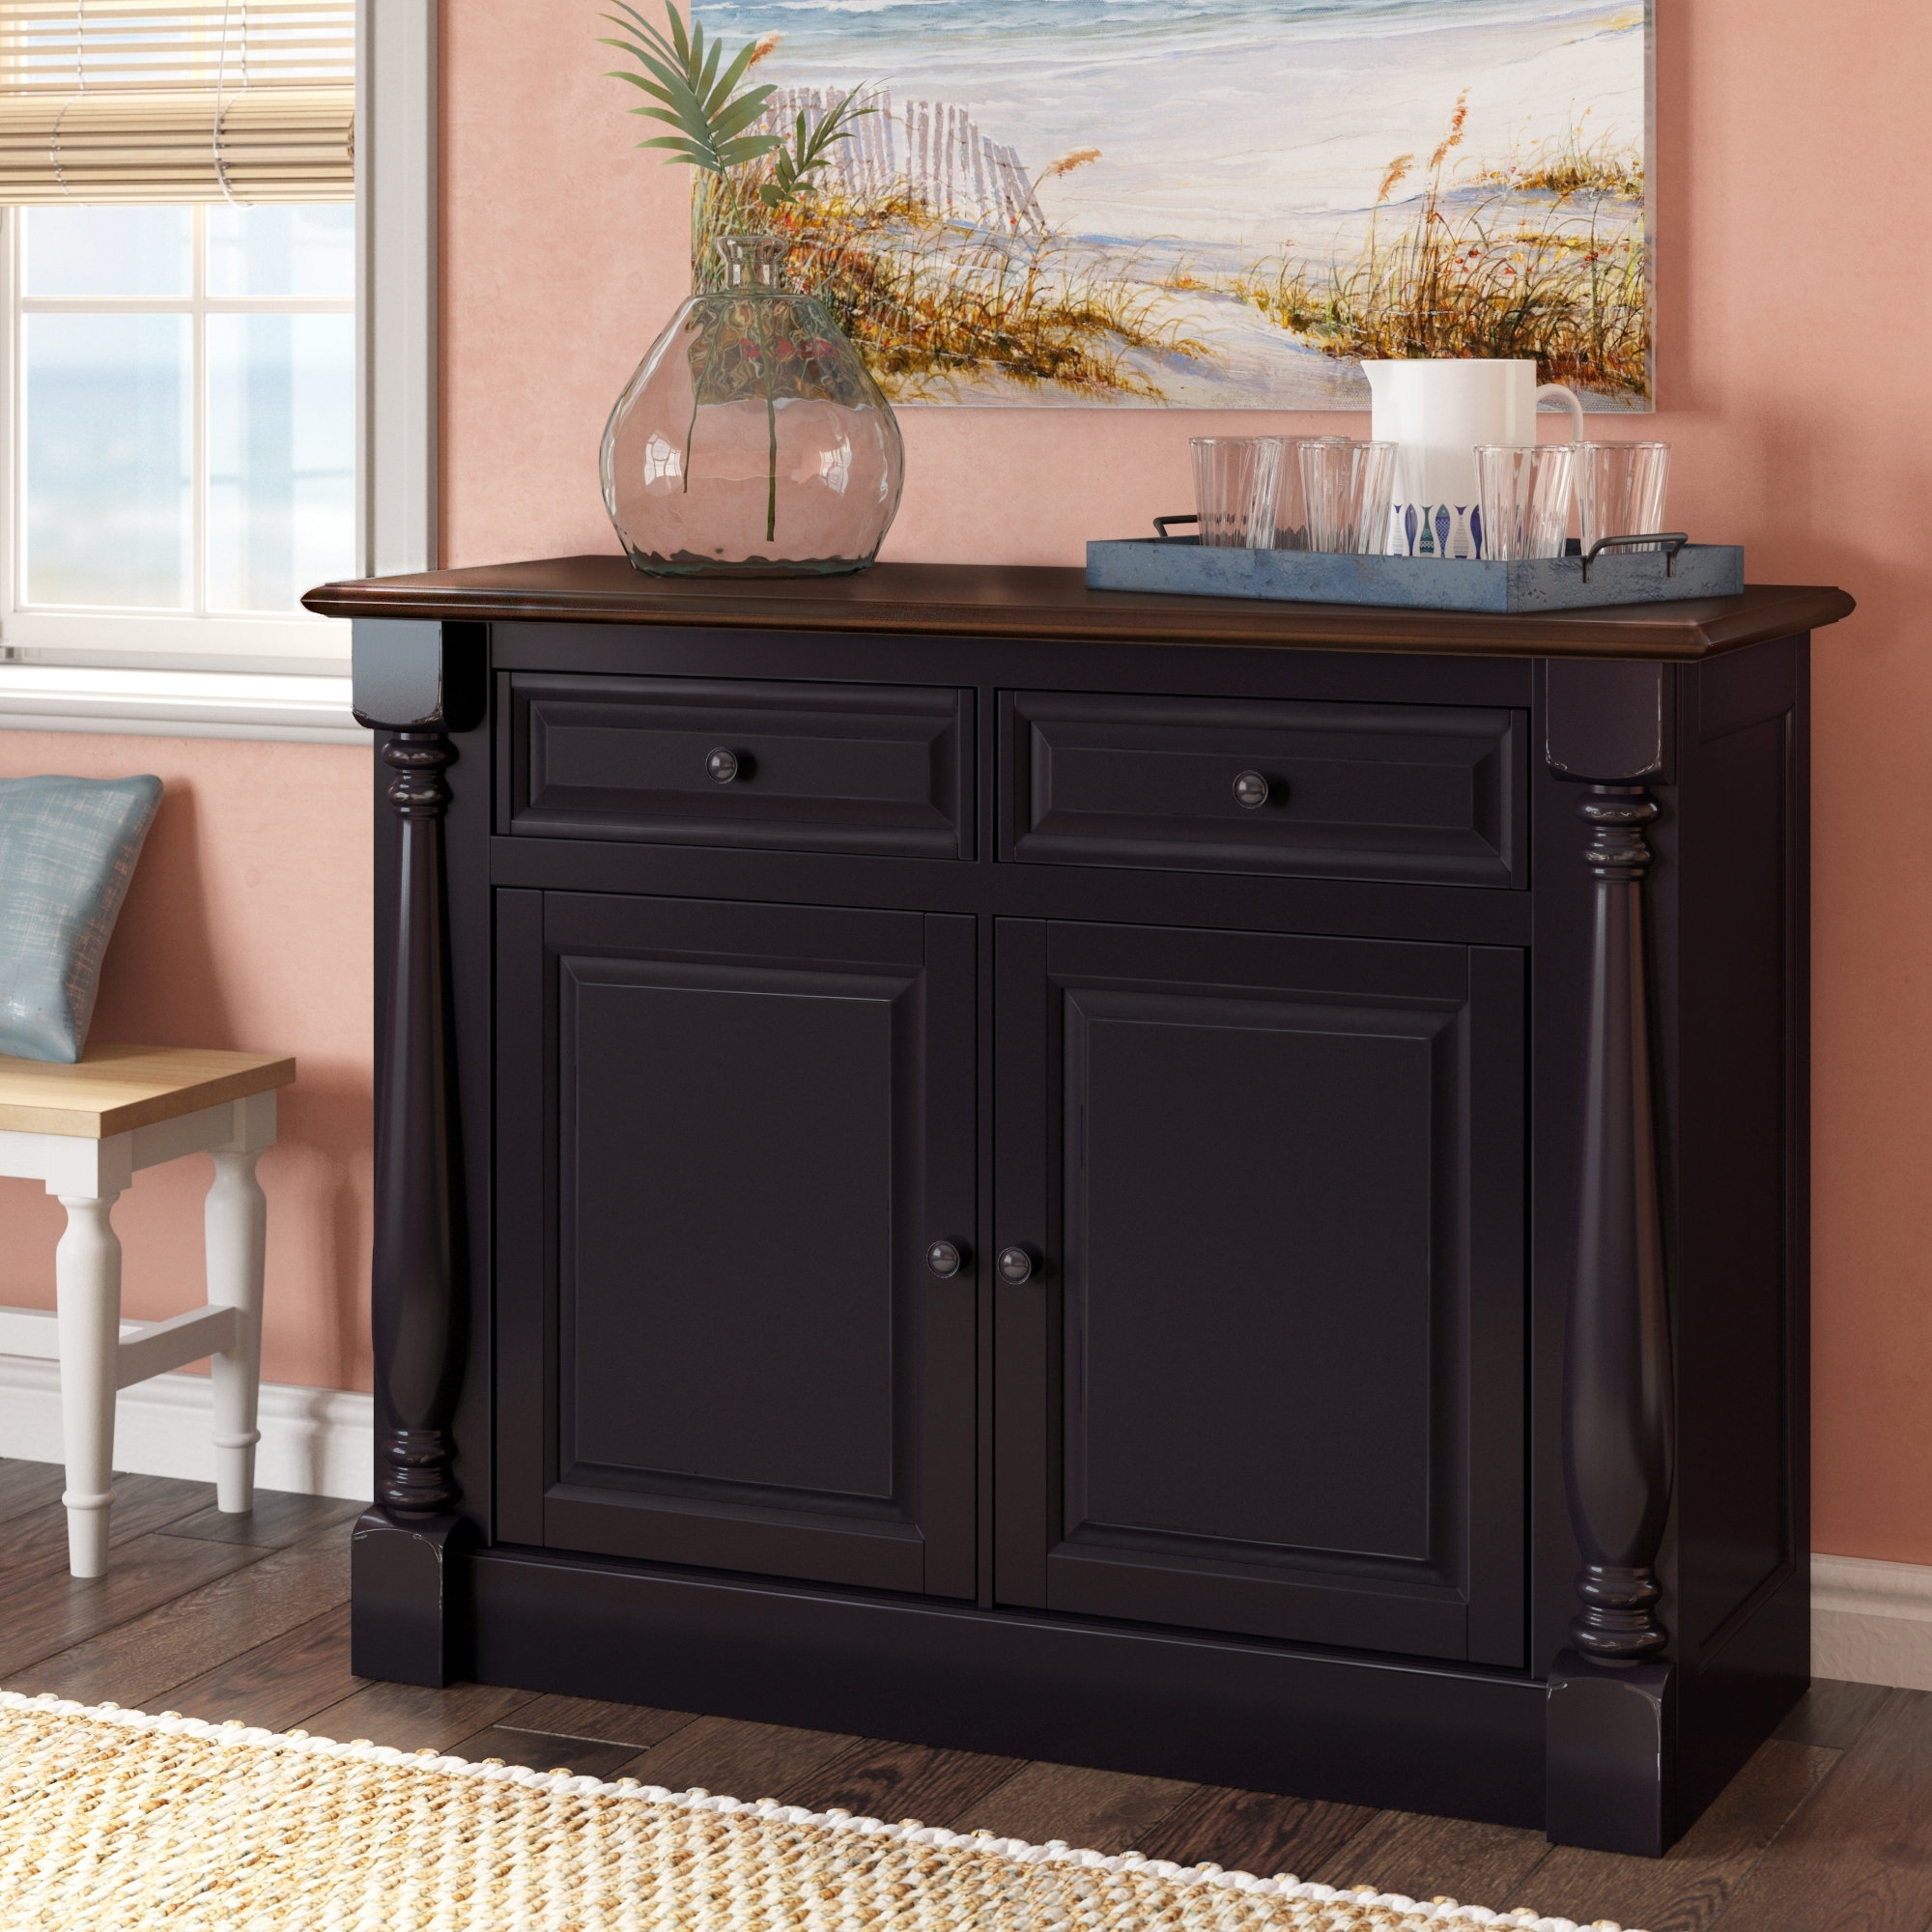 Beachcrest Home Kivalina Server & Reviews | Wayfair Intended For Most Recently Released Calhoun Sideboards (View 19 of 20)